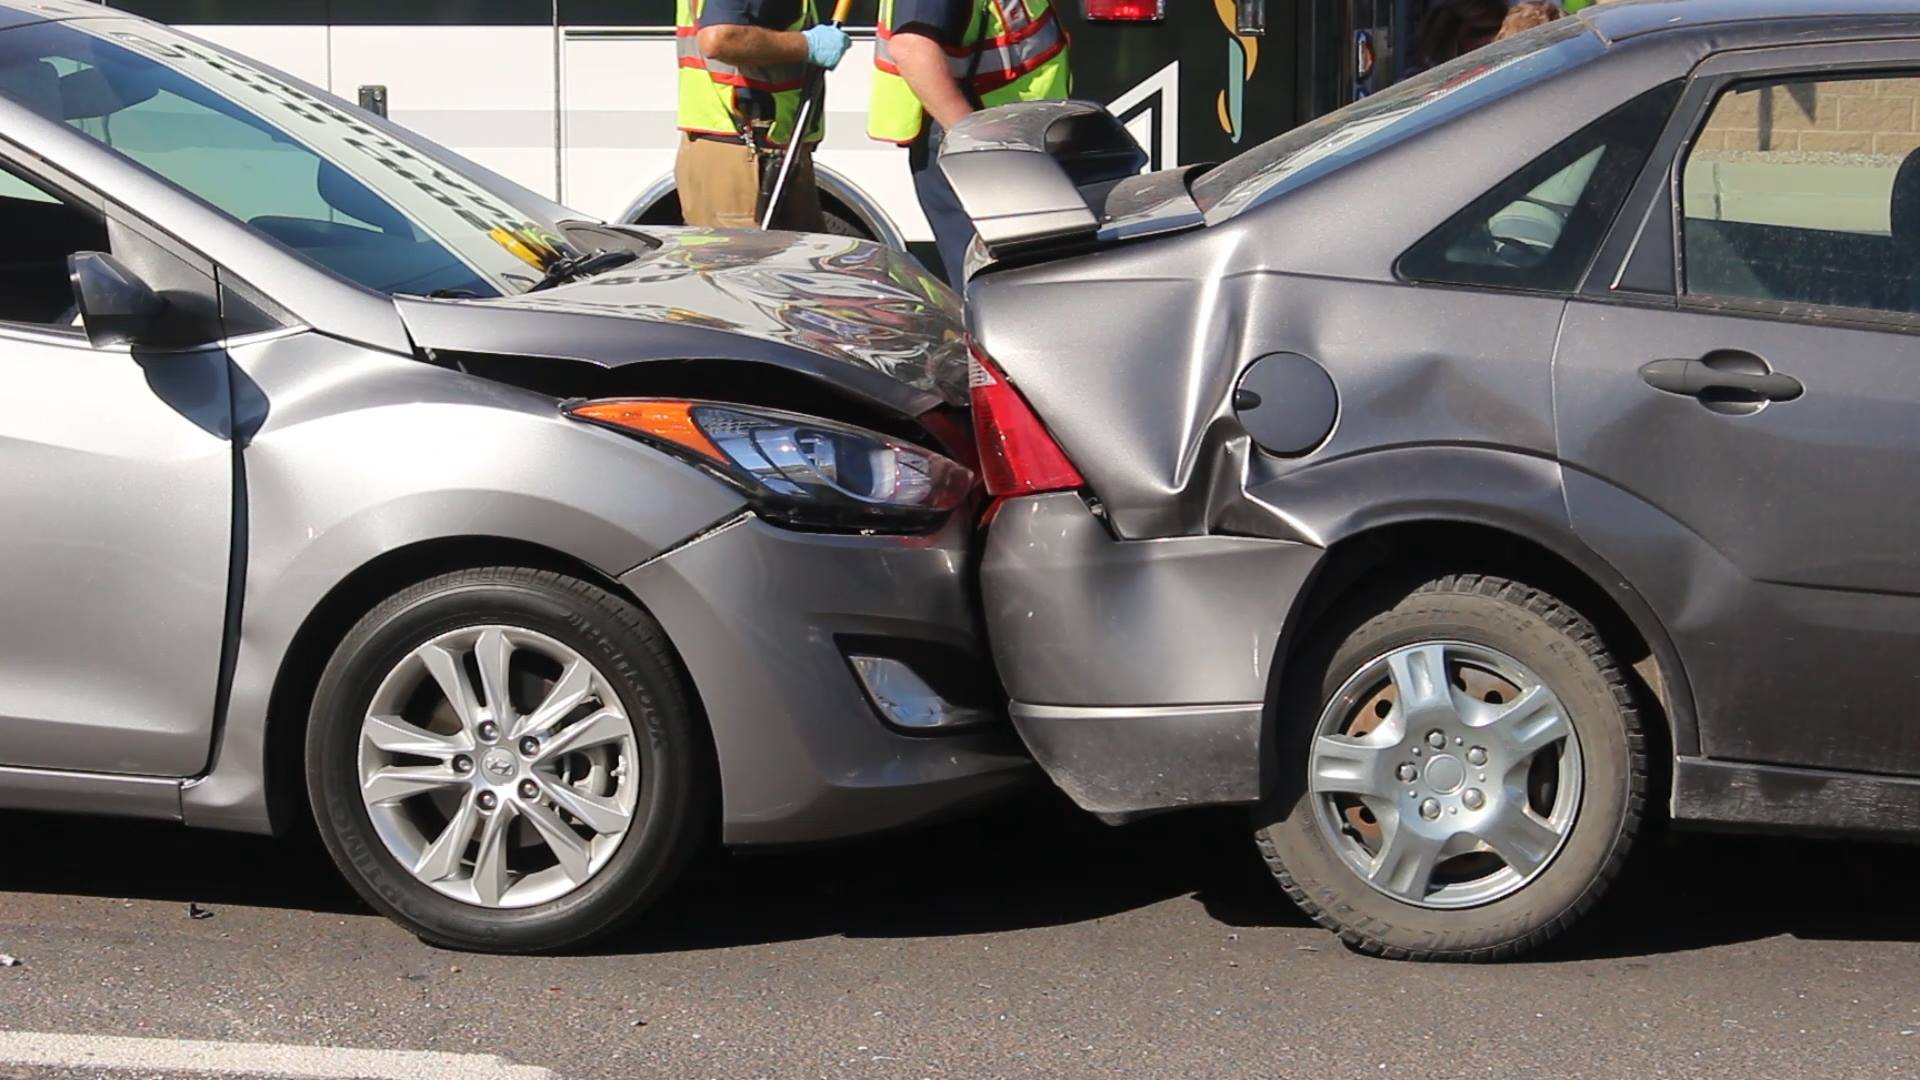 A 6-car collision sent a person to the hospital Tuesday. St. George, Utah, October 11, 2016 | Photo by Mike Cole, St. George News